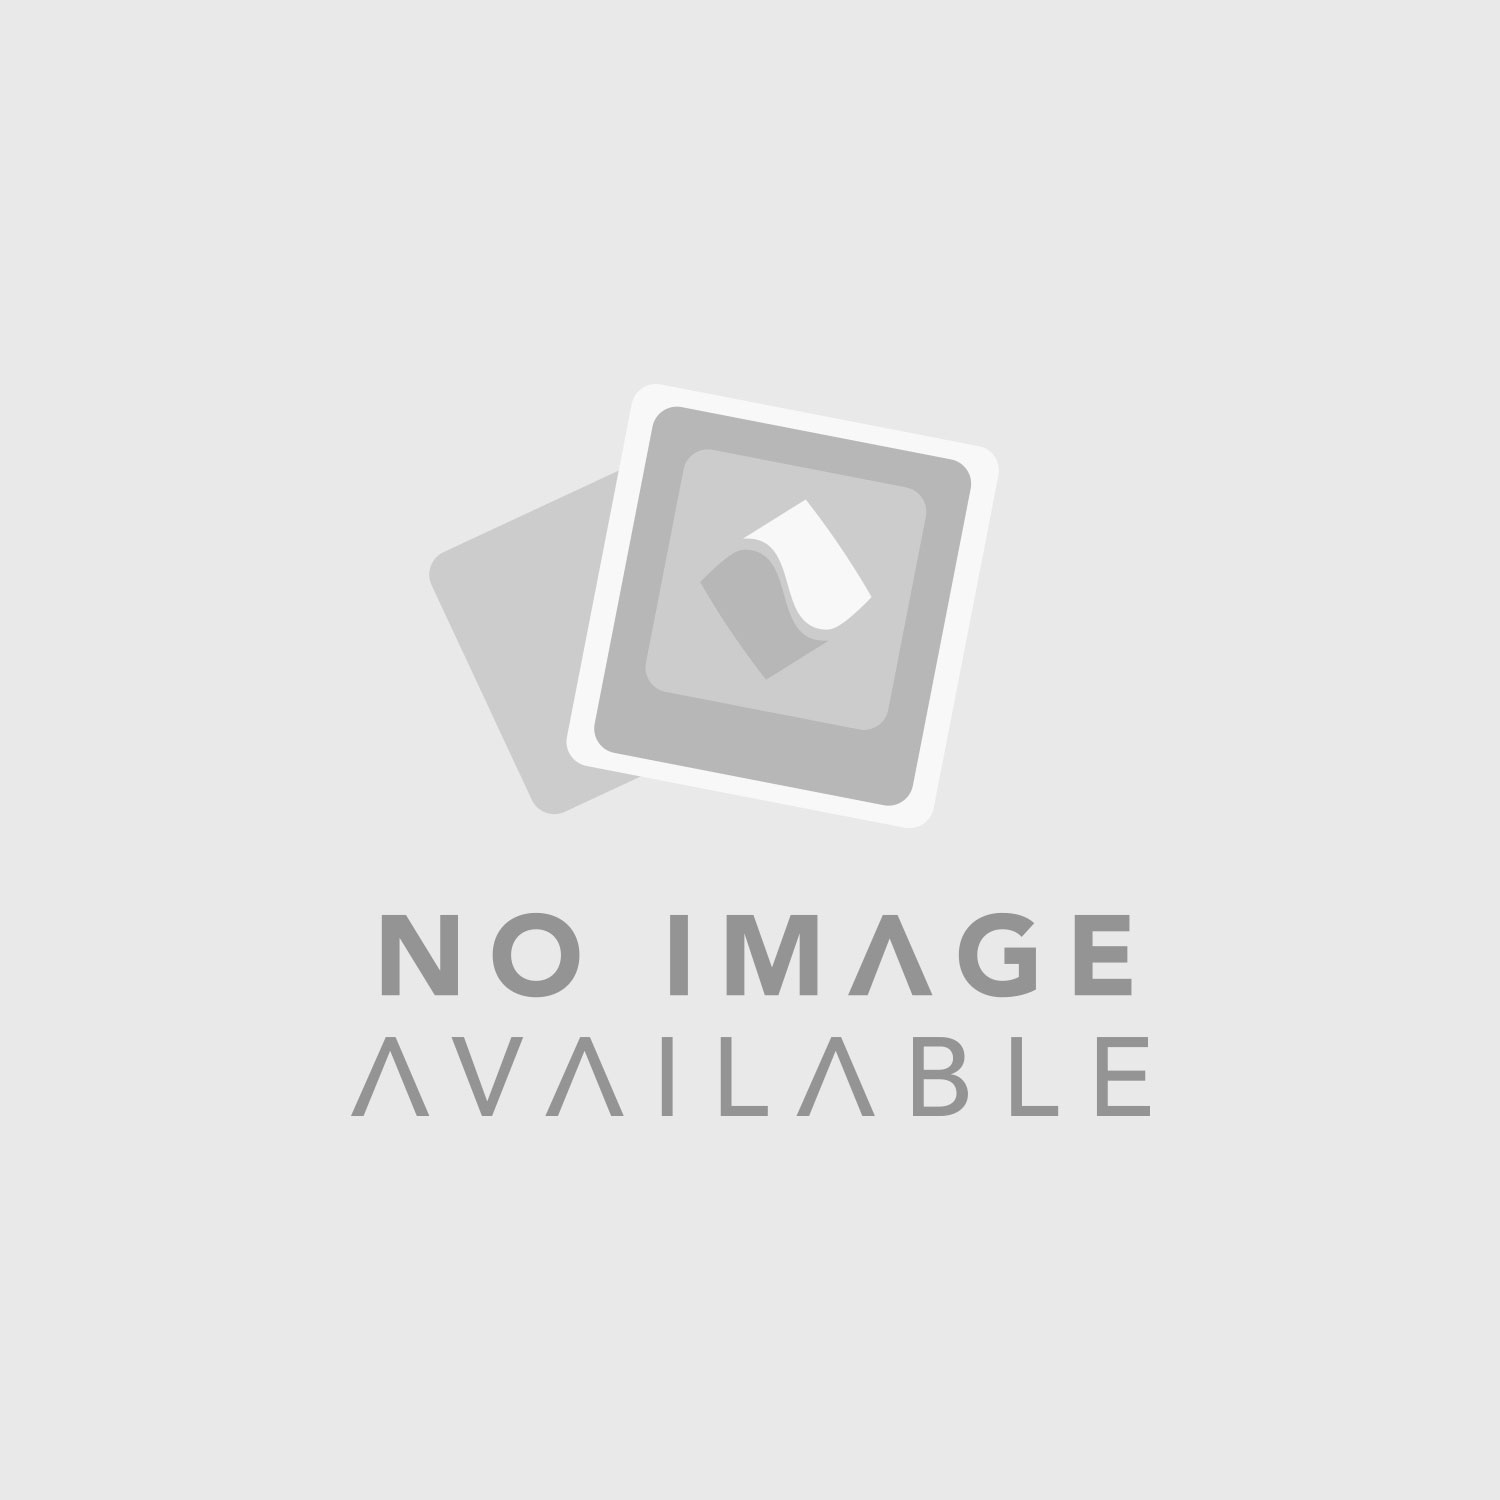 Penn Elcom M66006 Filter Foam Charcoal Grey (2M x 1M x 6mm)